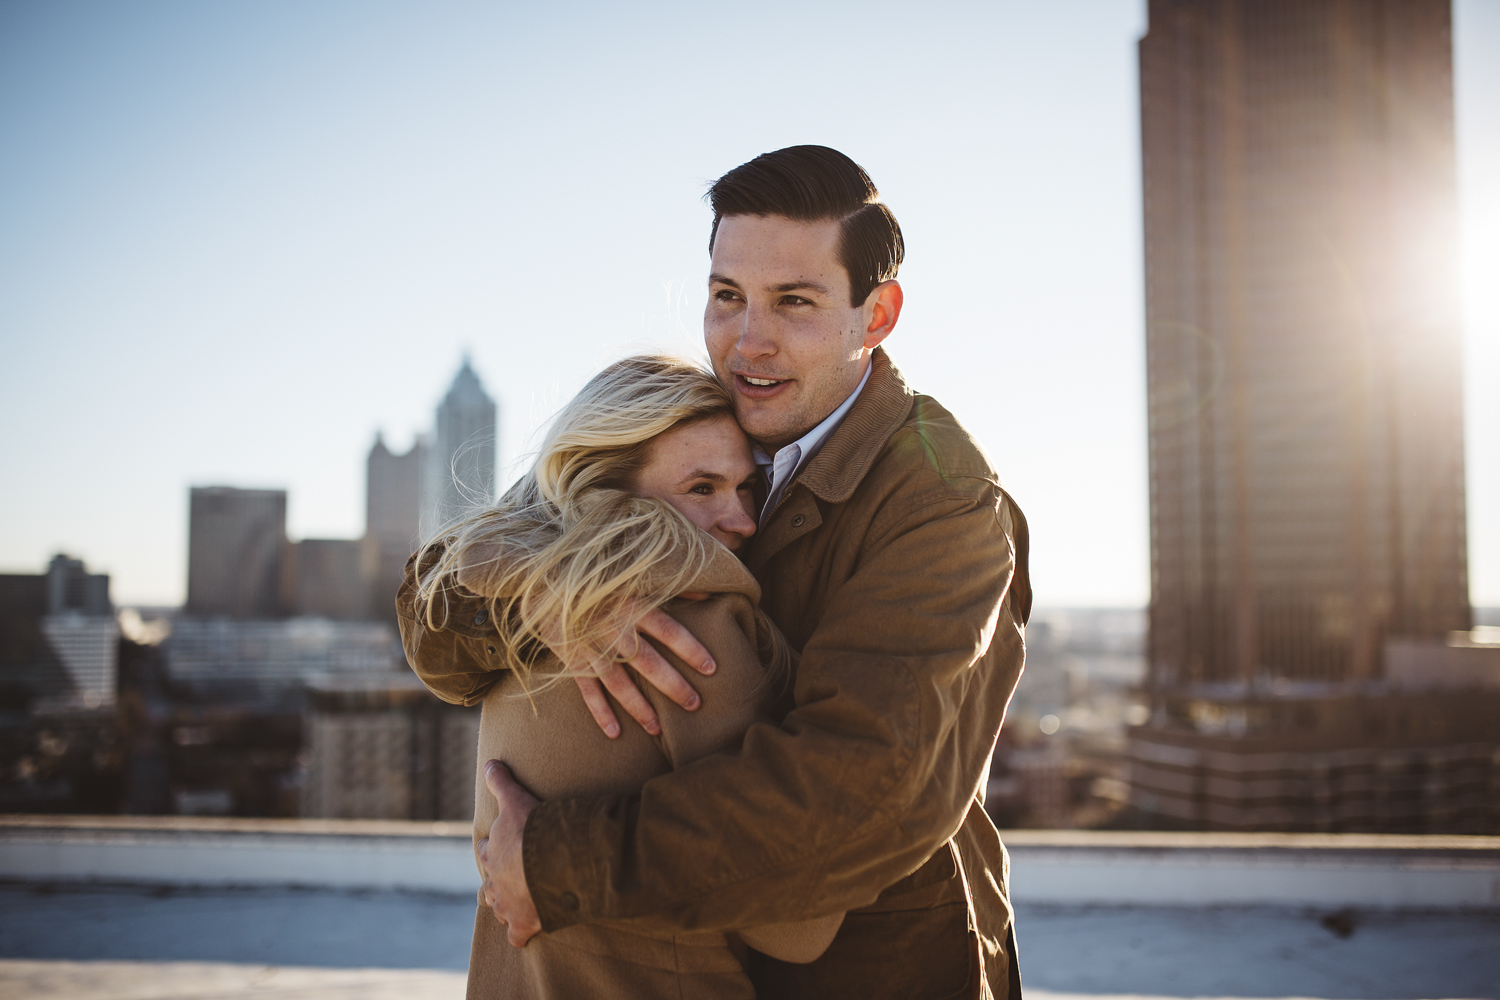 KDP_claire&drew - the proposal-285.jpg